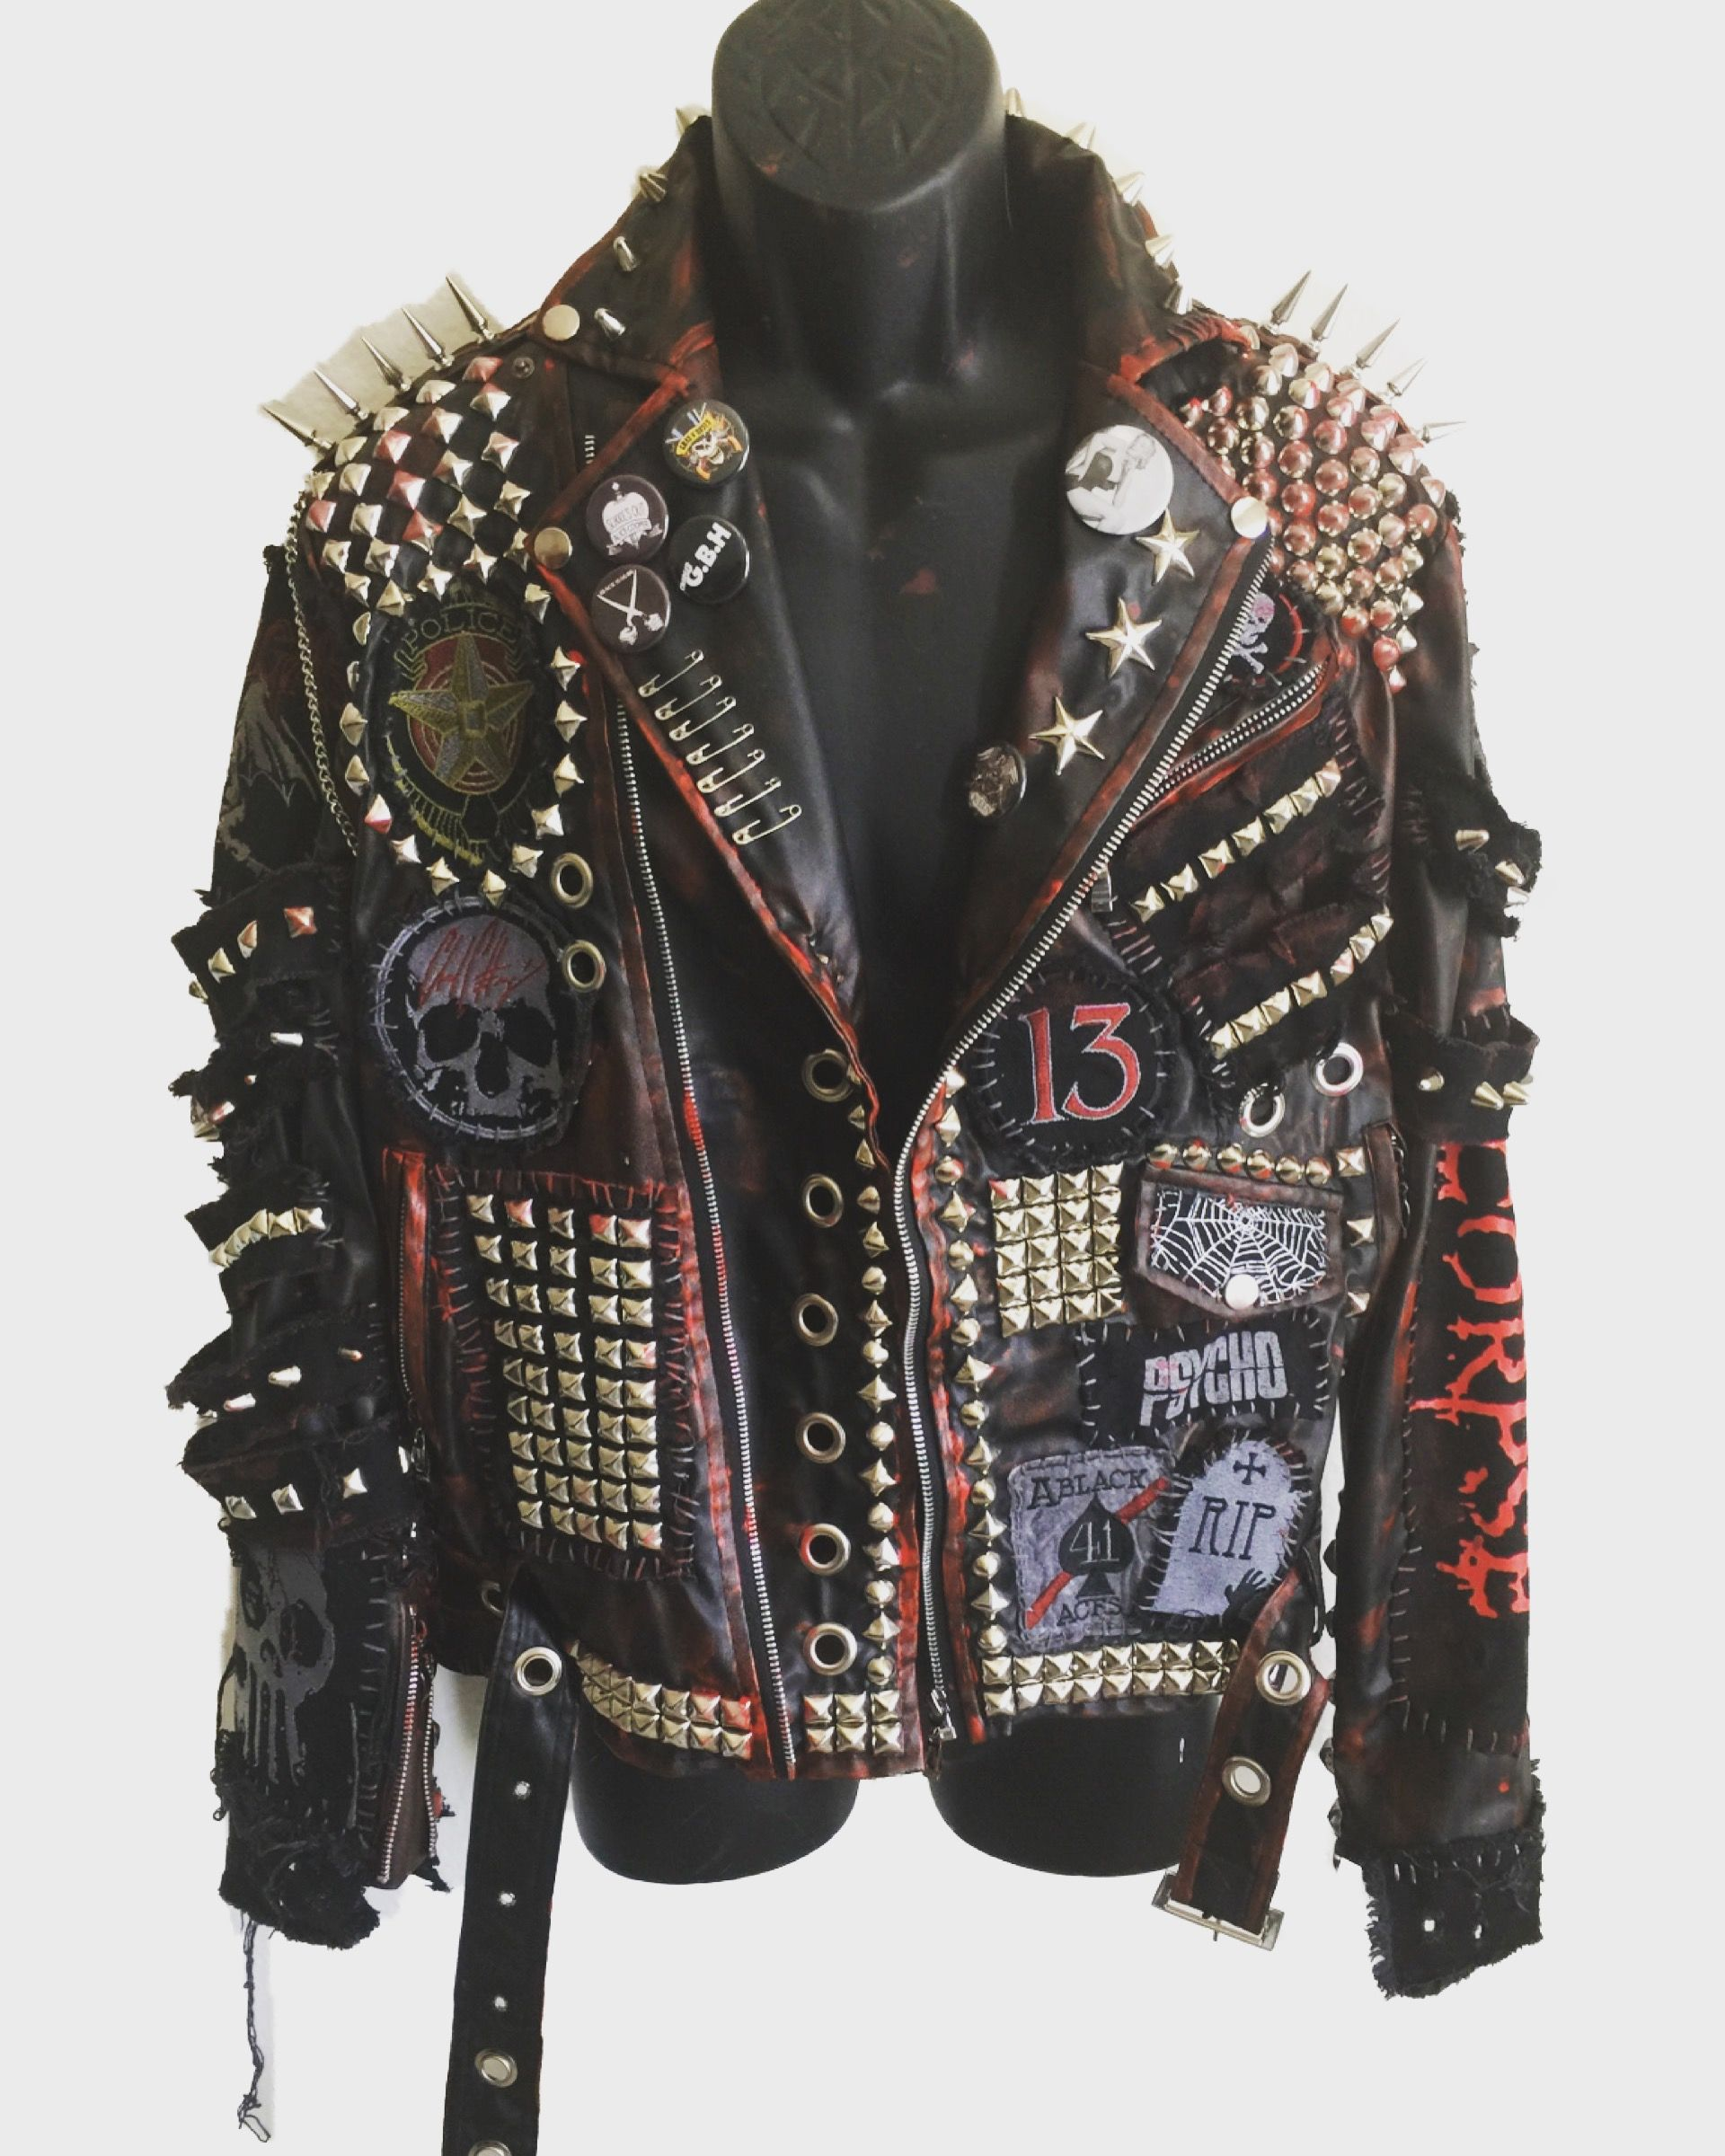 Psycho Jacket By Chad Cherry Etsy Spiked Leather Jacket Custom Leather Jackets Studded Leather Jacket [ 2400 x 1920 Pixel ]